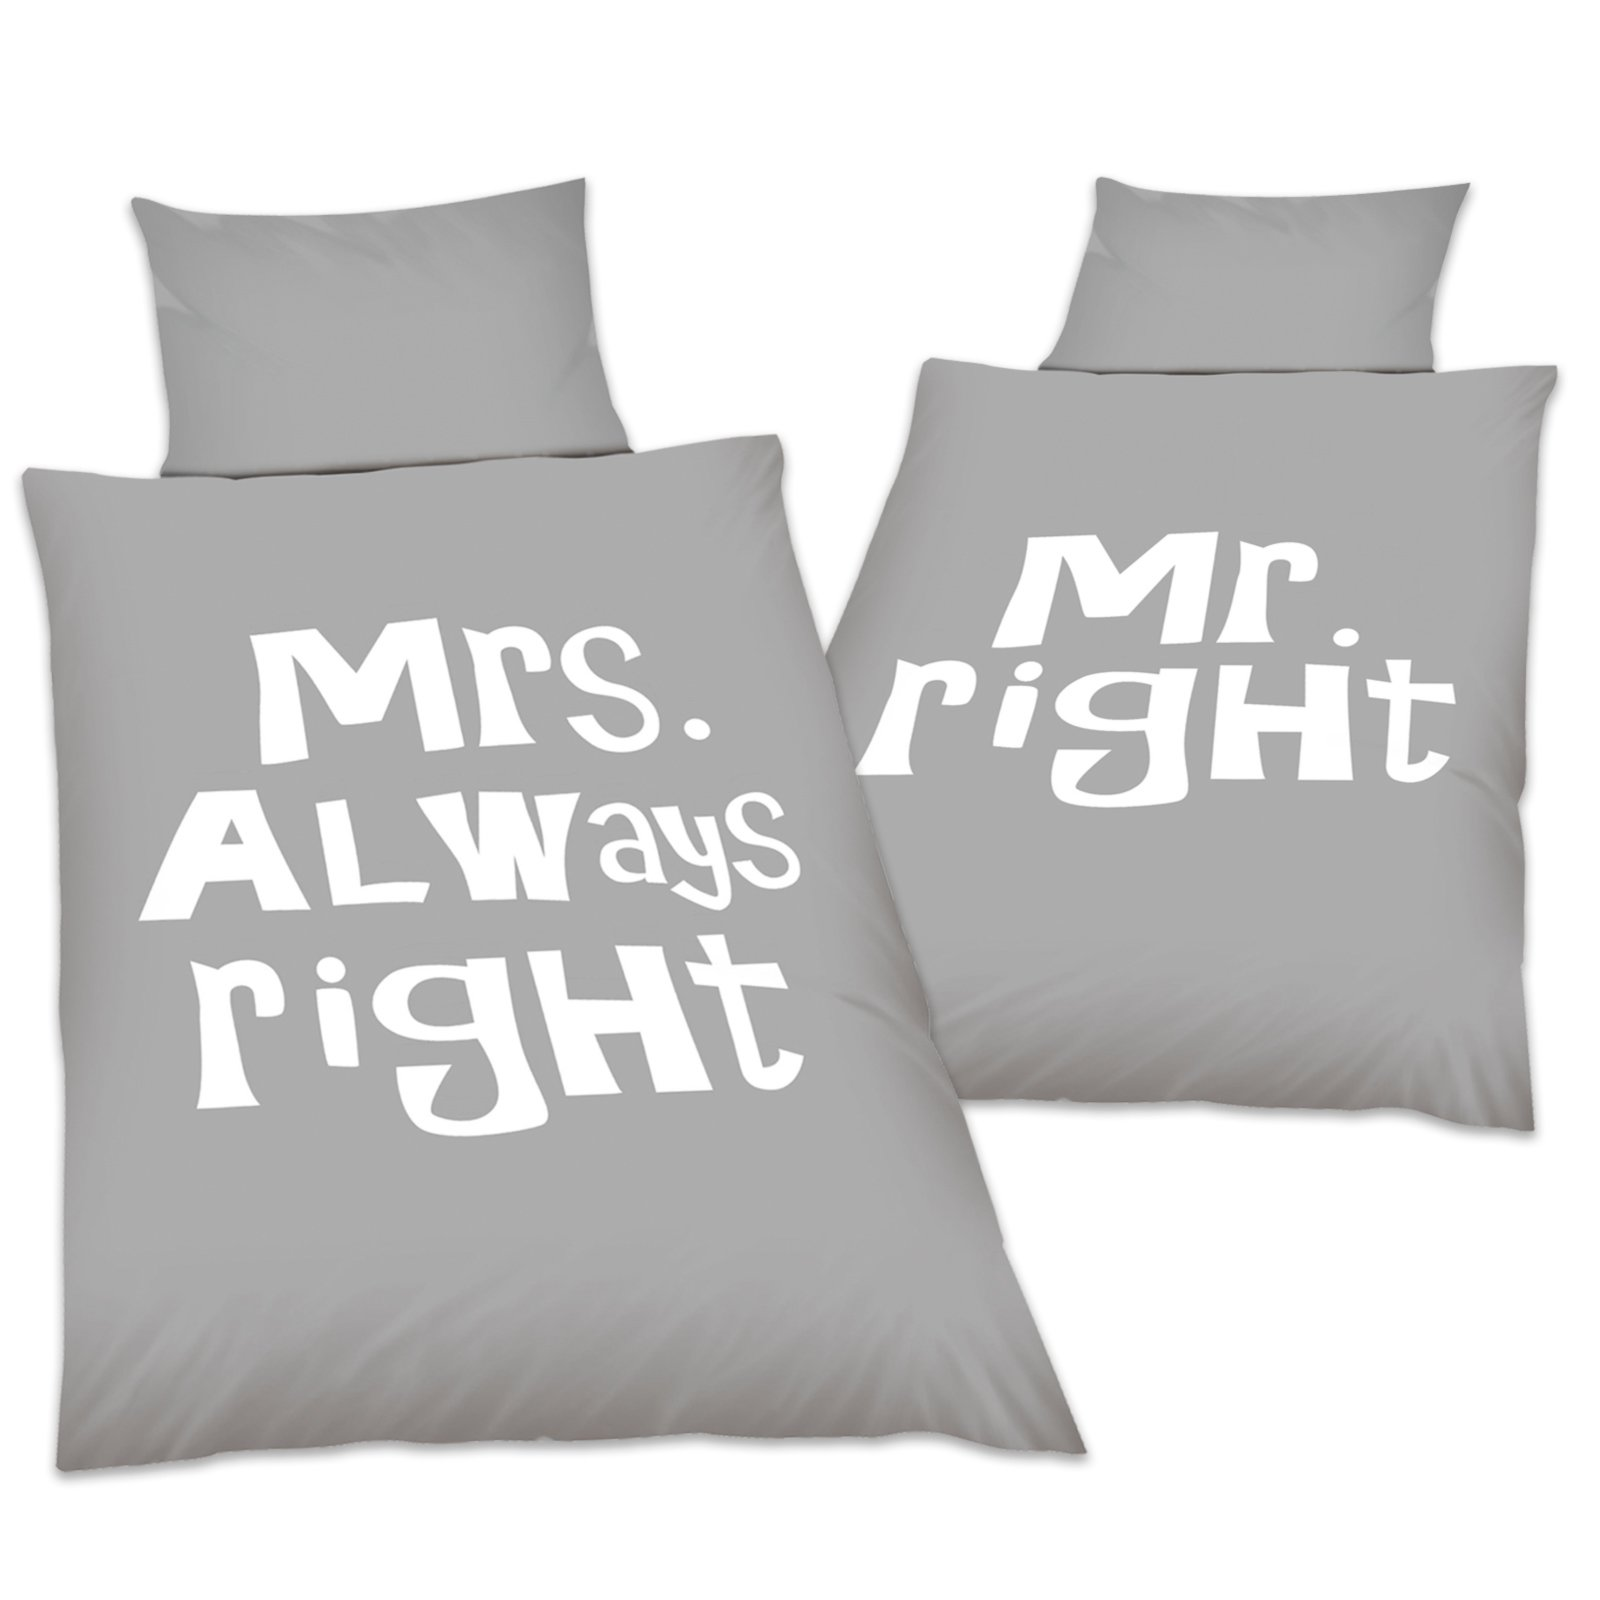 Mr Und Mrs Right Bettwäsche Microfaser Wende Bettwäsche Mr And Mrs Right 135x200